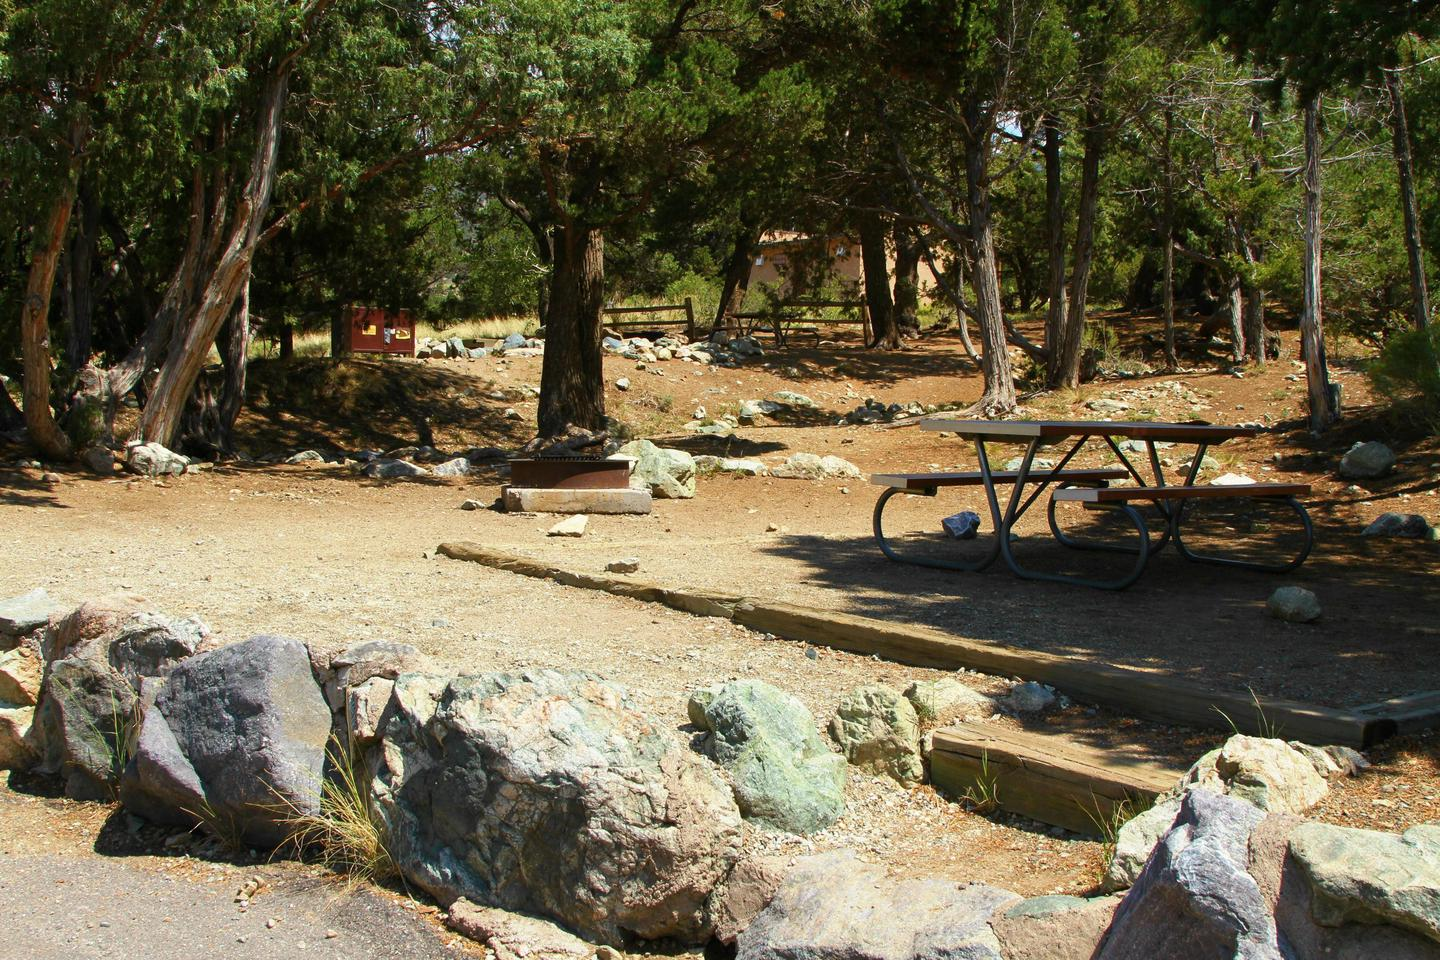 Side view of Site #29 stairs, designated tent pad, and picnic table. More trees and neighboring site #27 are in the background.Site #29, Pinon Flats Campground